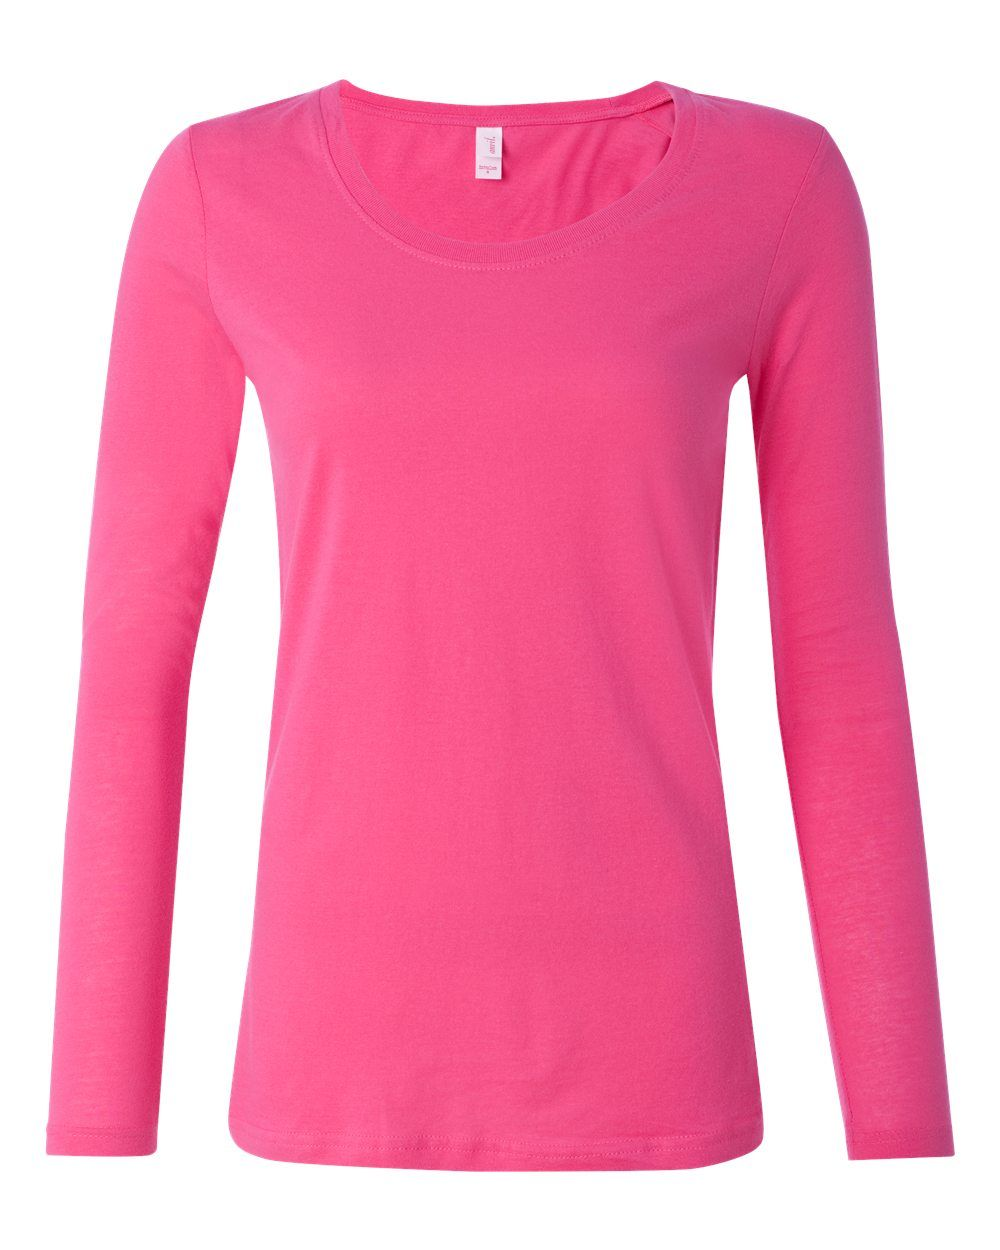 Anvil Hot Pink Ladies Semi-Sheer Long Sleeve Scoopneck T-Shirt 399 ...